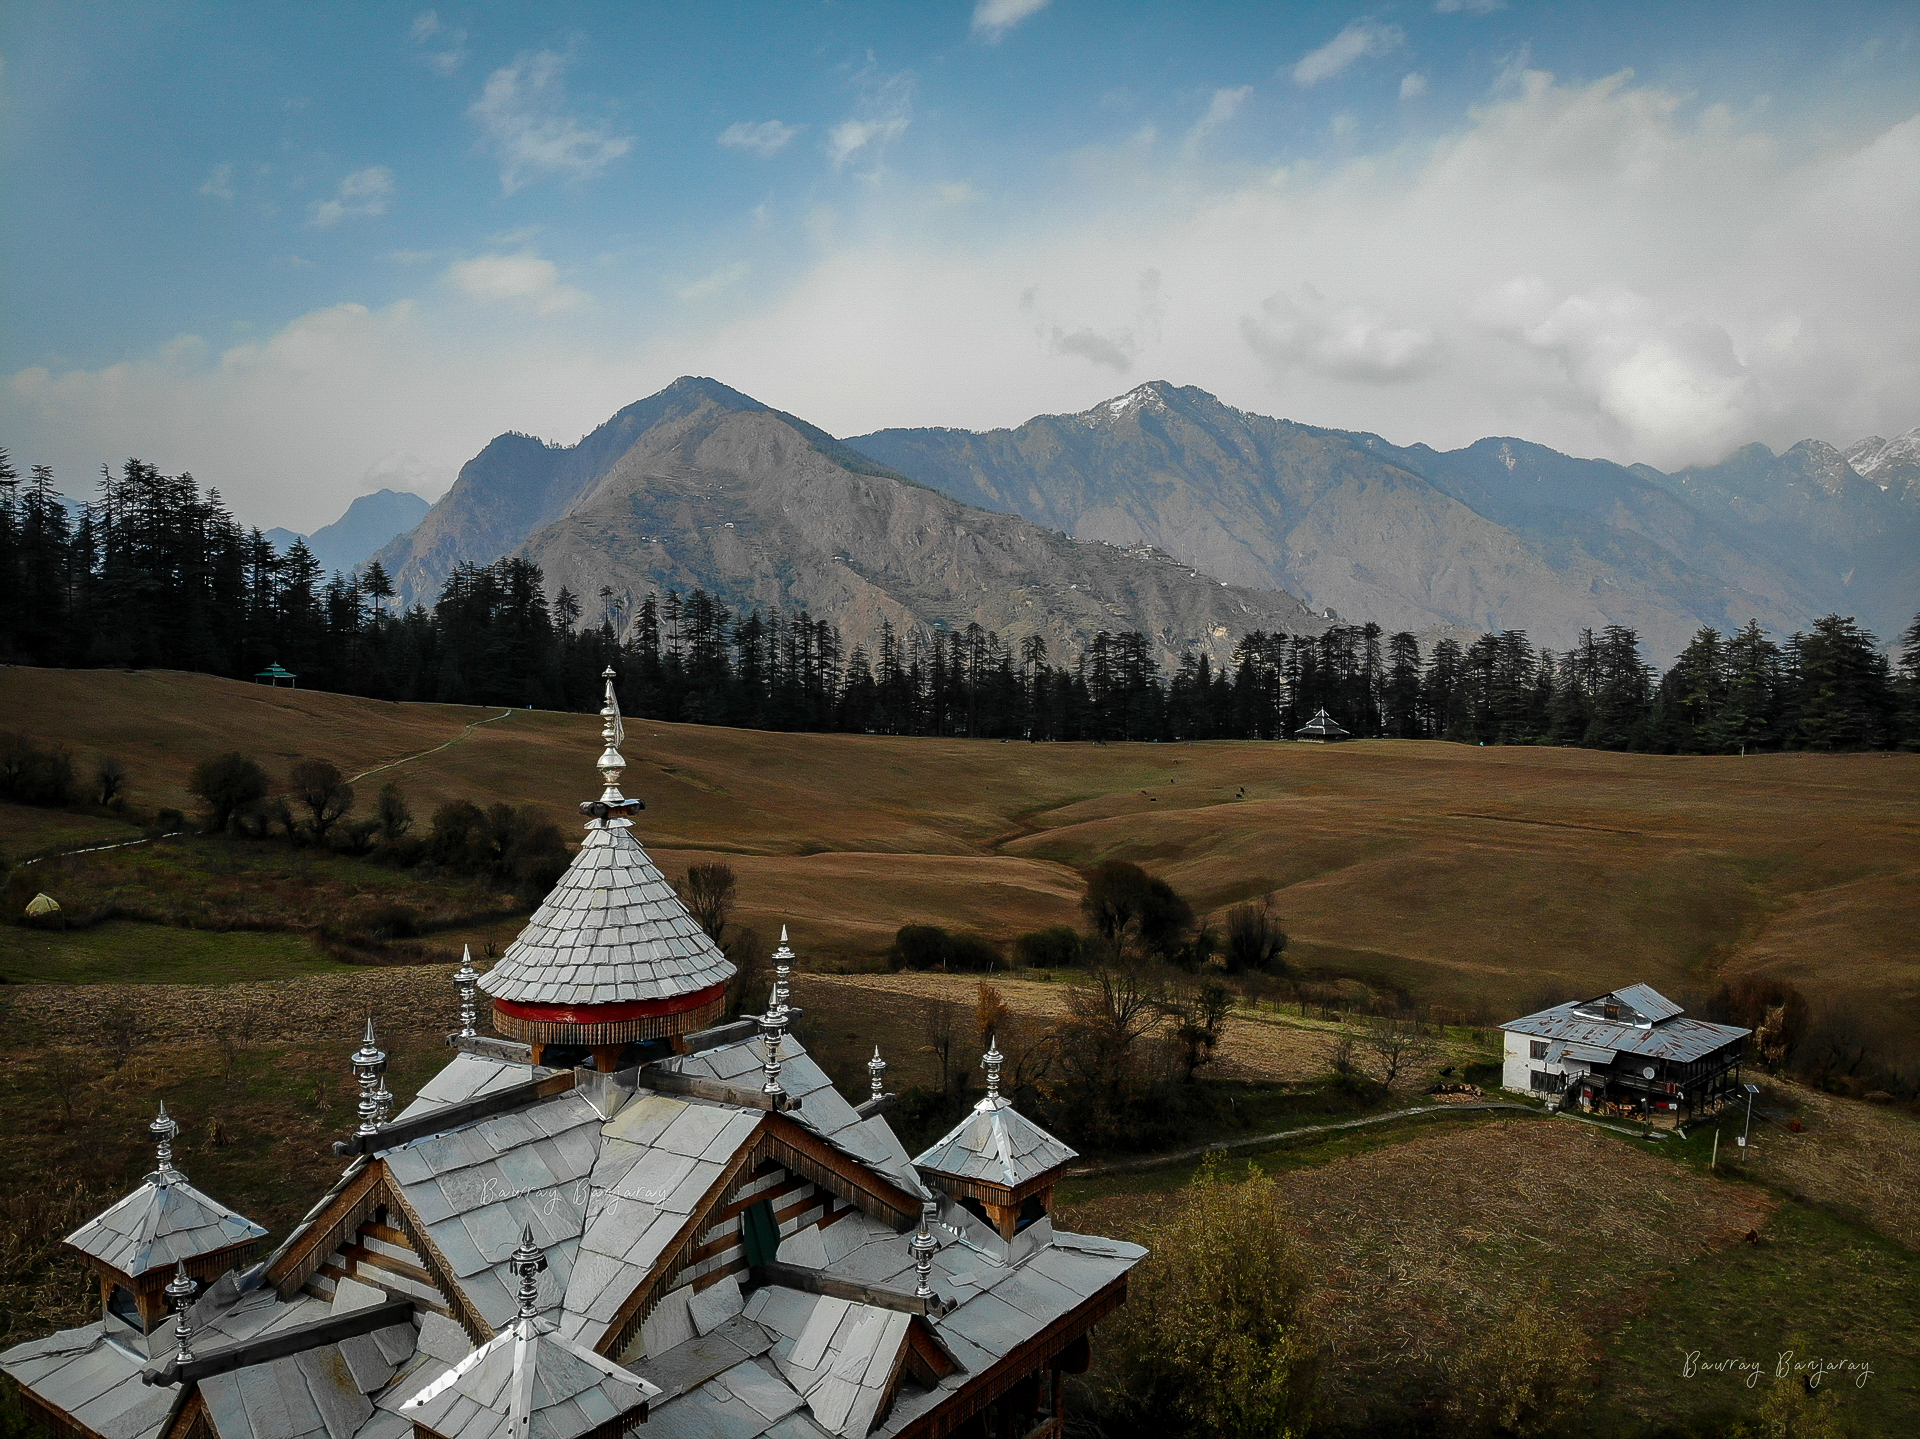 The Shangarh Meadow and the Shangchul Mahadev Temple